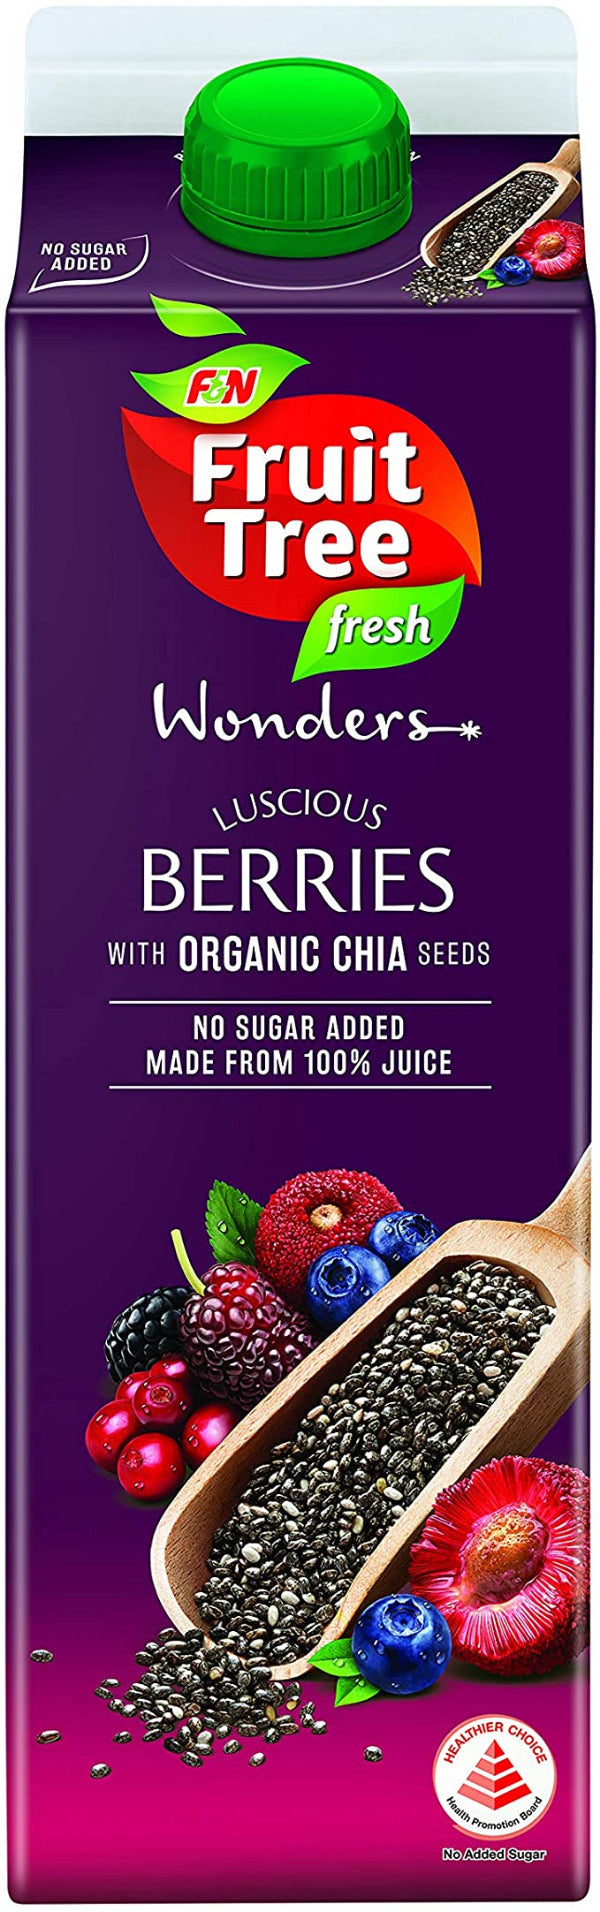 SnacksToGo Singapore delivery of F&N Fruit Tree Berries With Chia NAS (1litre)